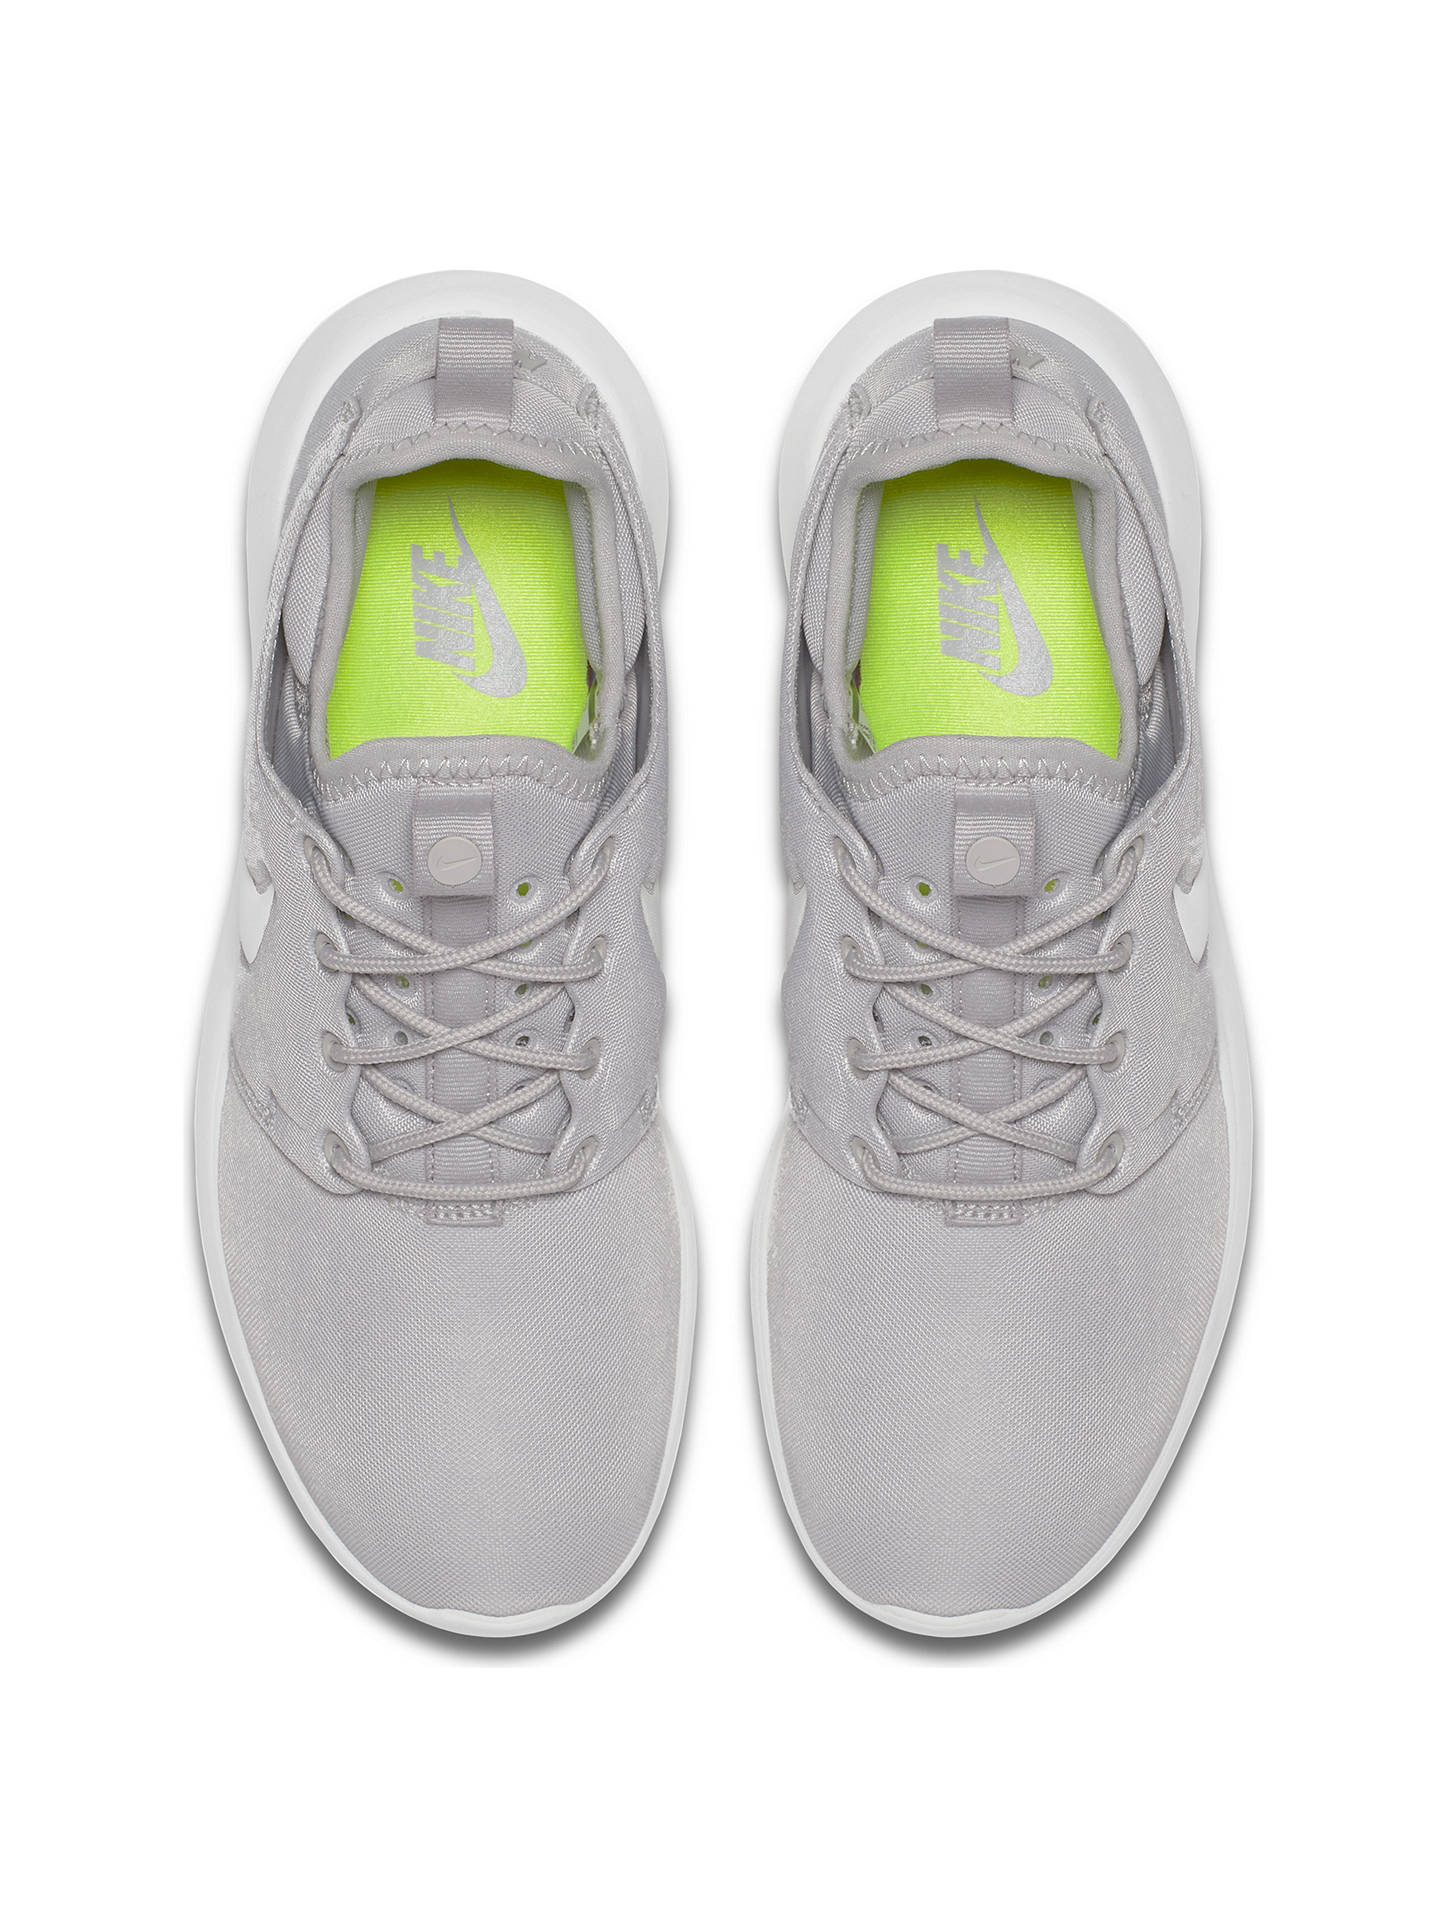 f788b2b53 ... Buy Nike Roshe Two Women's Trainers, Grey, 4 Online at johnlewis.com